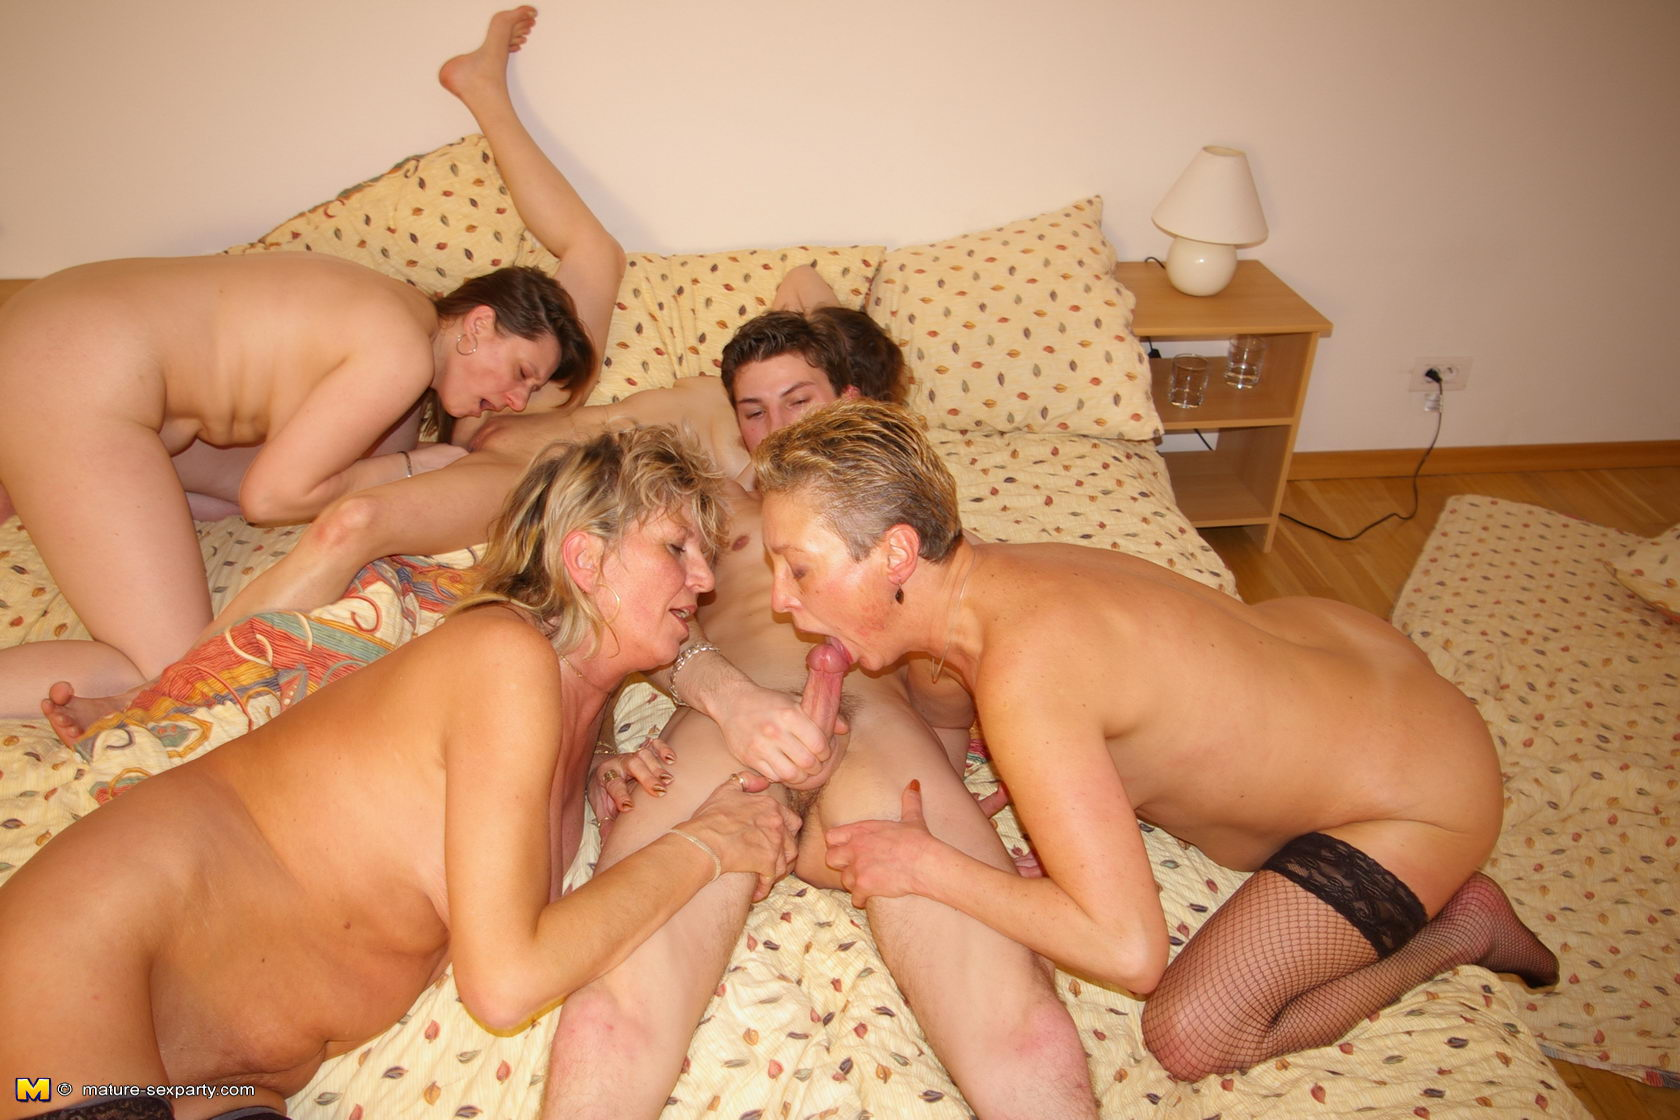 Lesbians eating eachother out and having sex